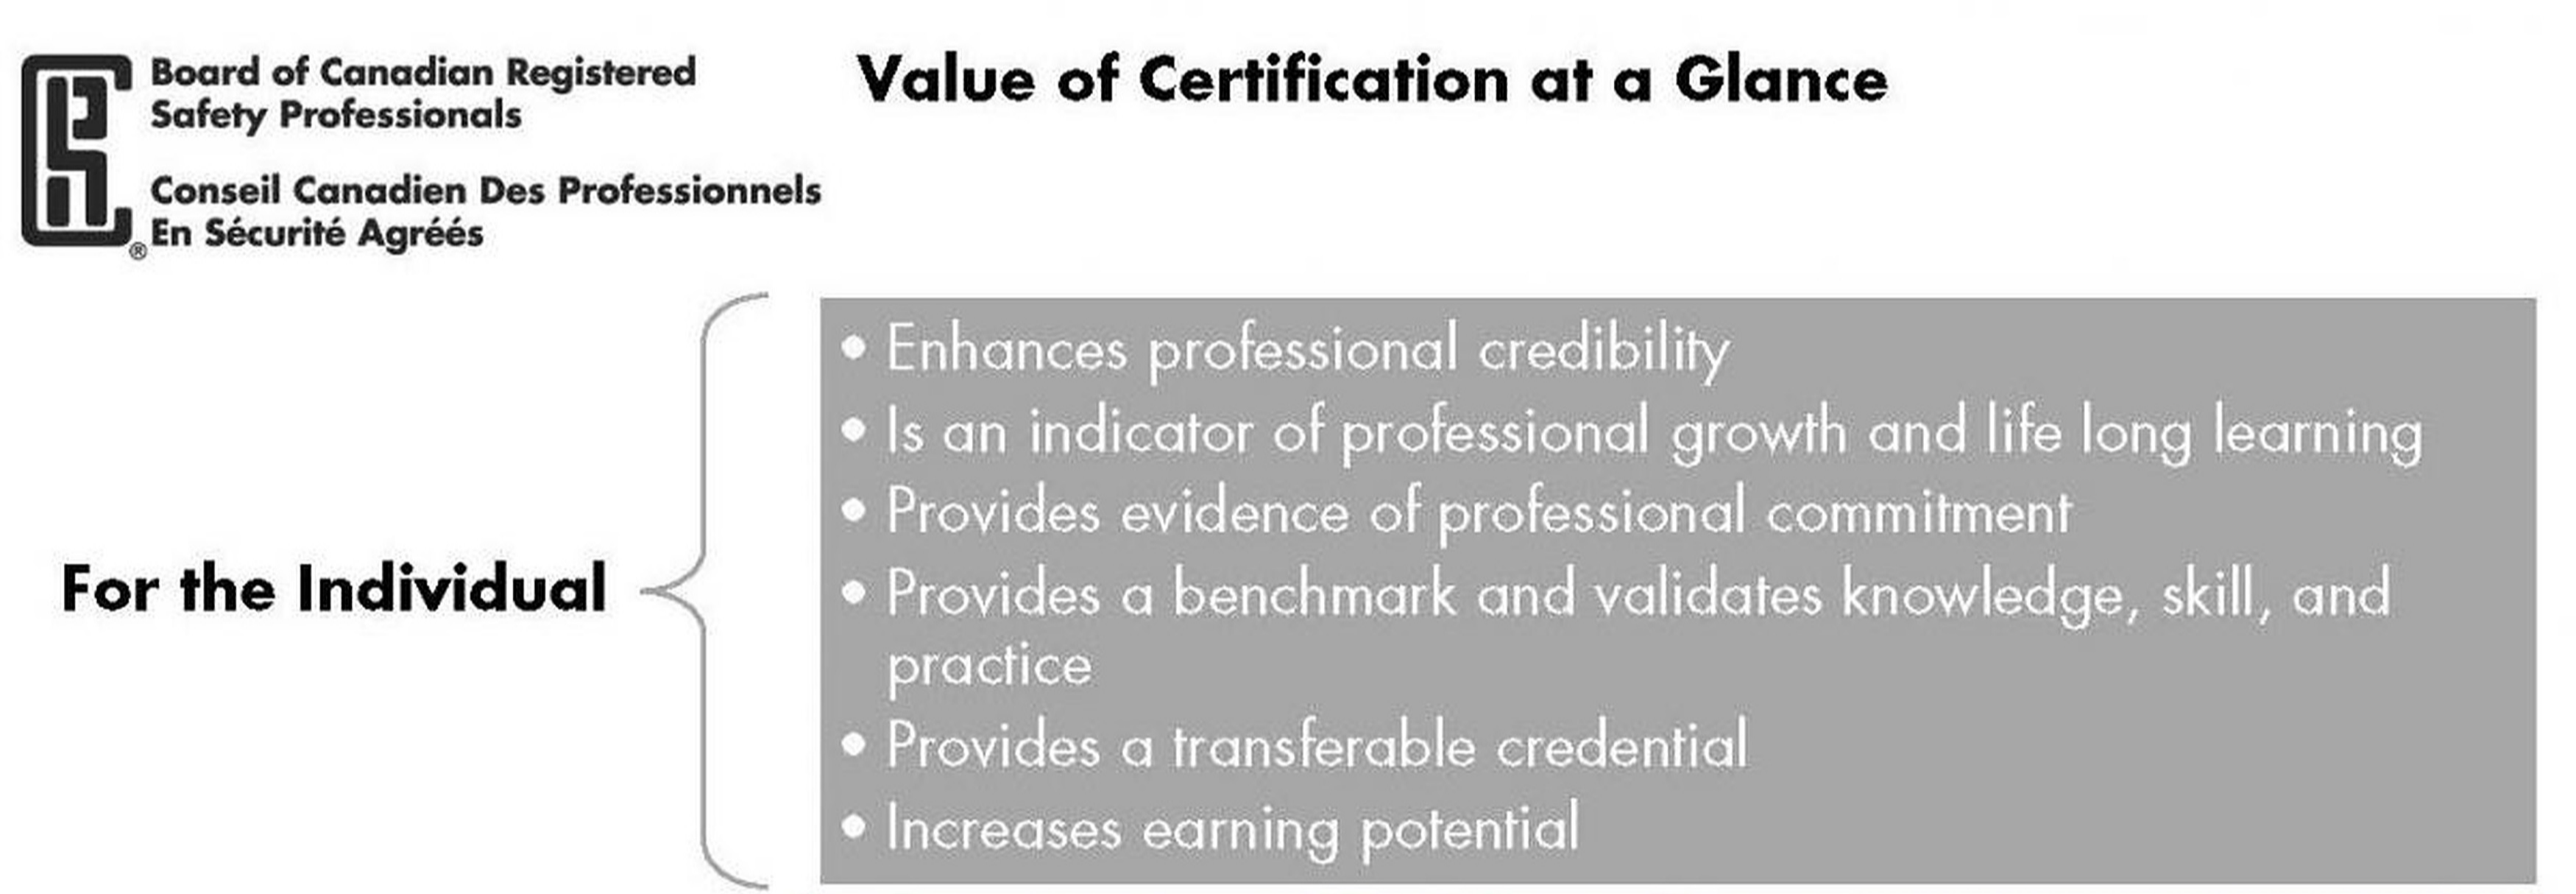 BCRSP_ValueCertification-v1-2-1